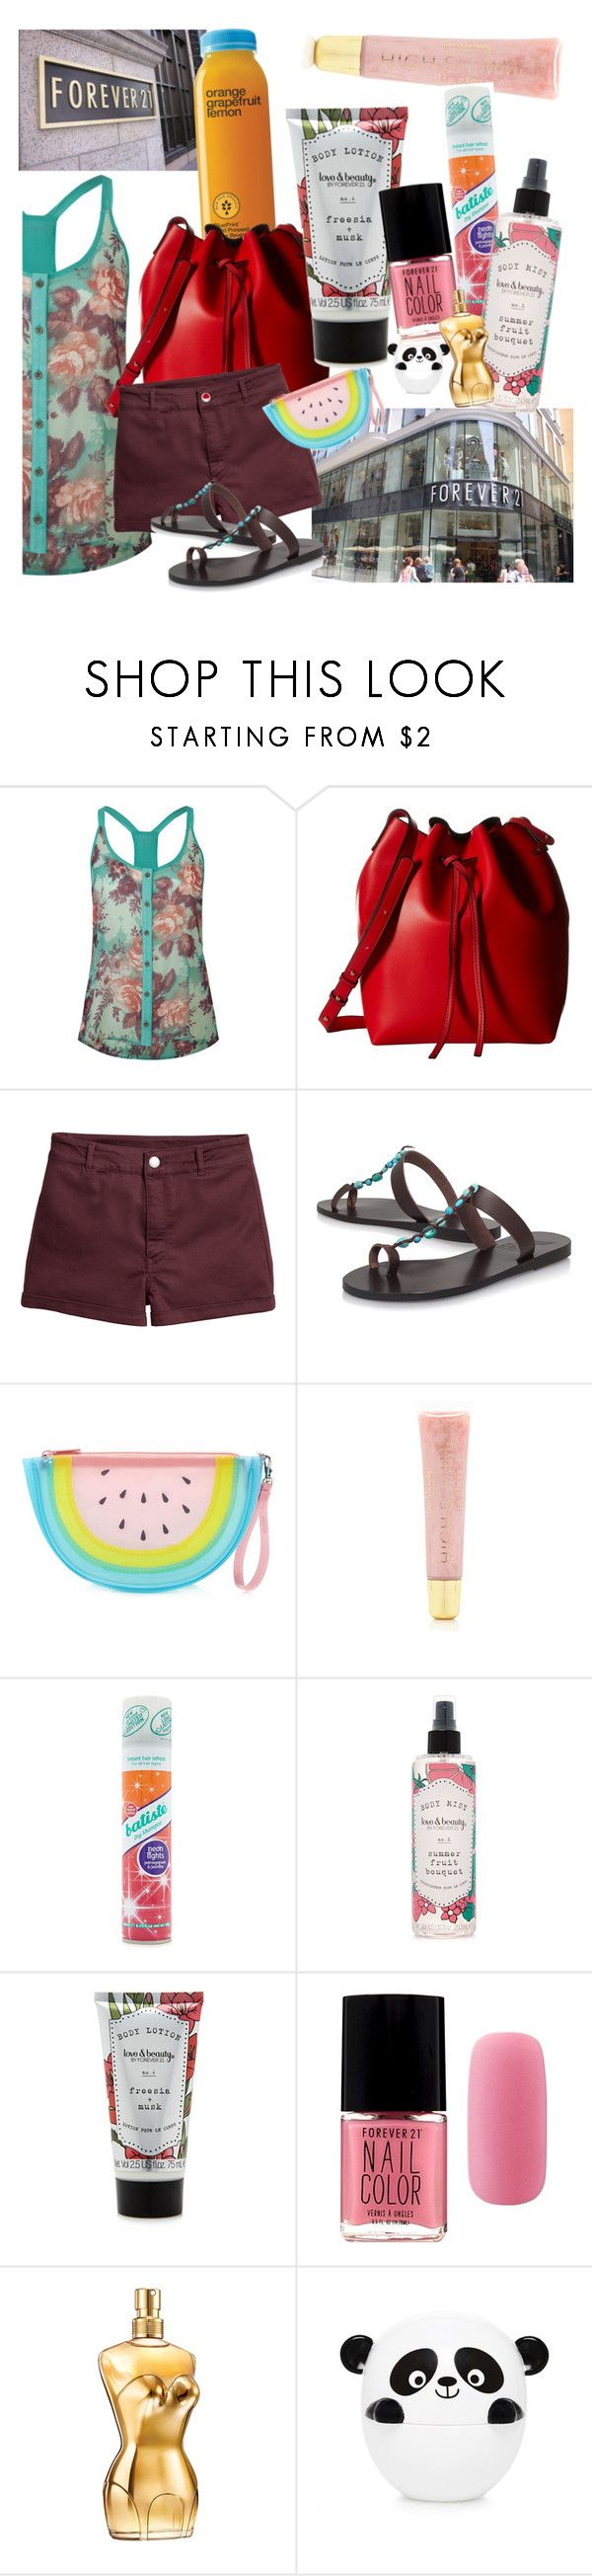 """set O3 // shopping"" by ivyfanfic ❤ liked on Polyvore featuring Lottie & Holly, Gabriella Rocha, H&M, Ancient Greek Sandals, Forever 21, Jean-Paul Gaultier and stylingmysummer"